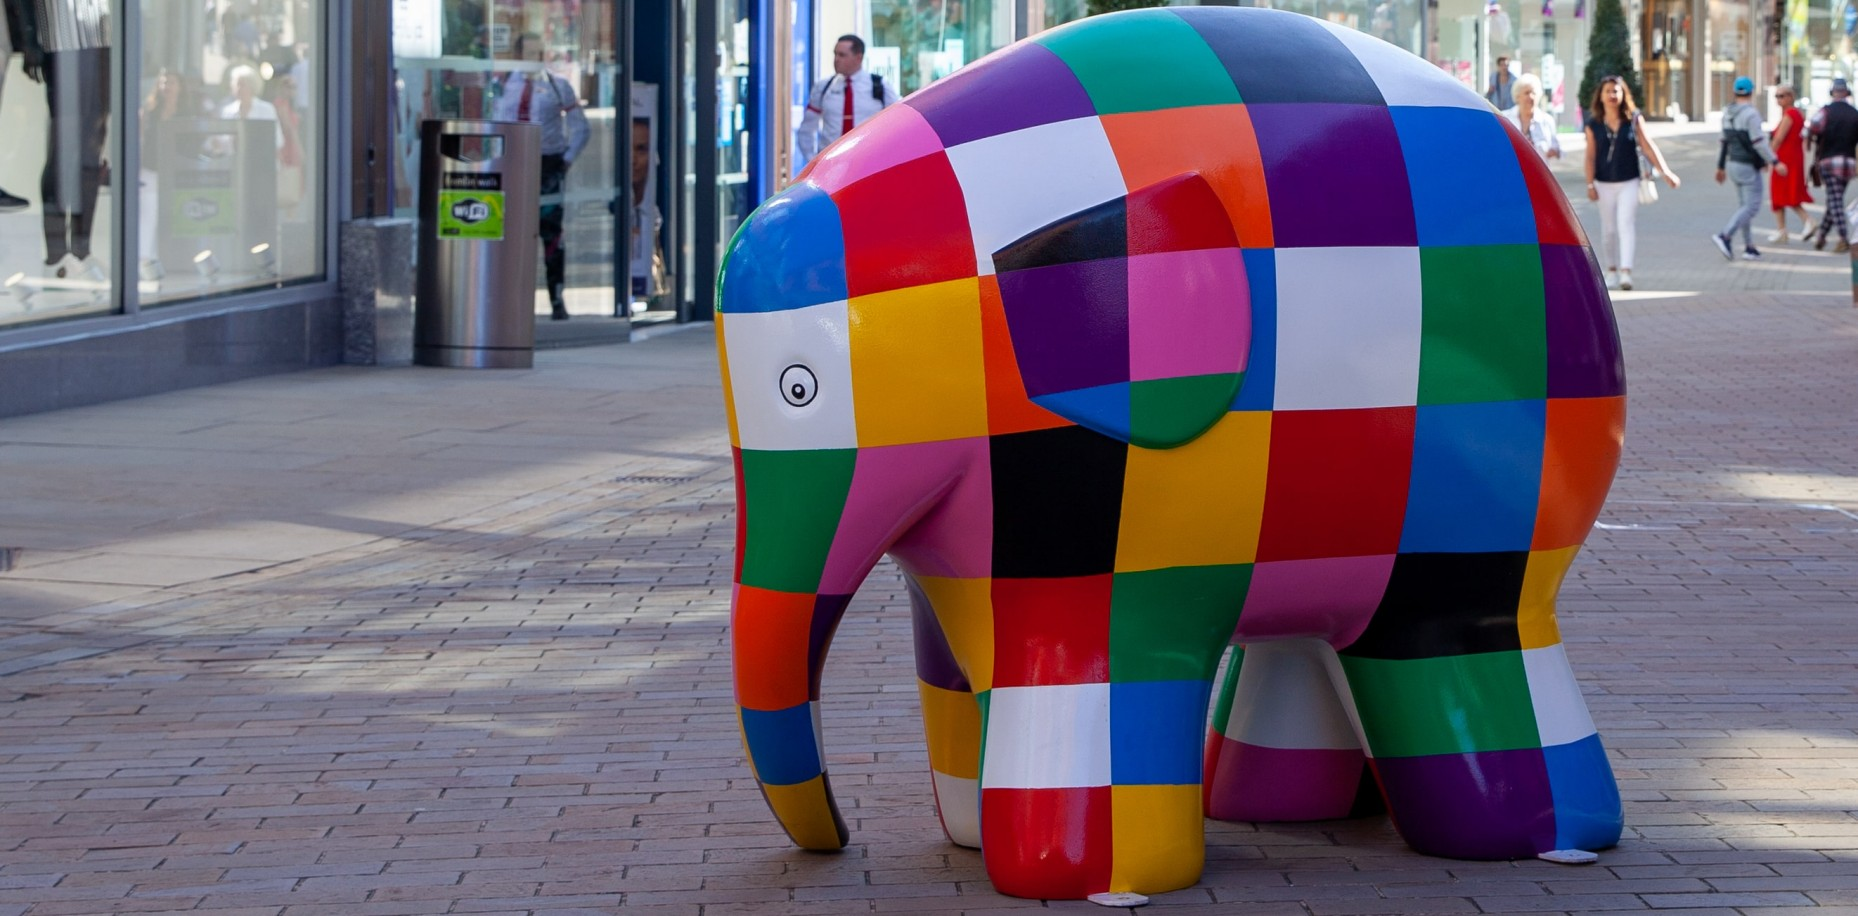 Elmer's Big Heart of Kent Parade in Maidstone is open from tomorrow; it's going to be fabulous